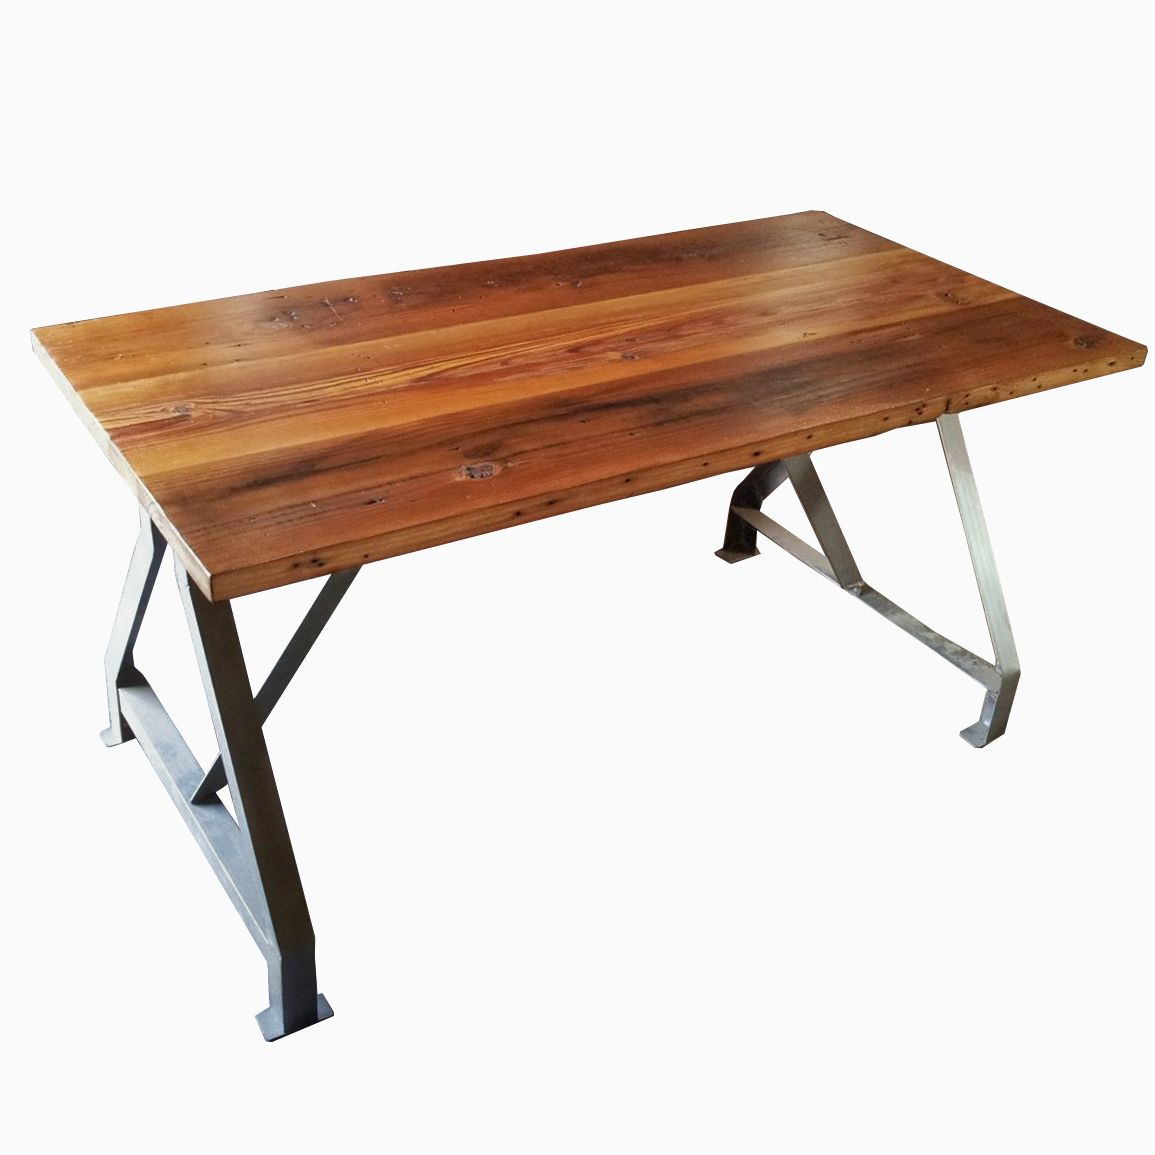 Industrial Unique Metal Designer Coffee Table: Buy A Hand Made Factory Work Table With Industrial Metal